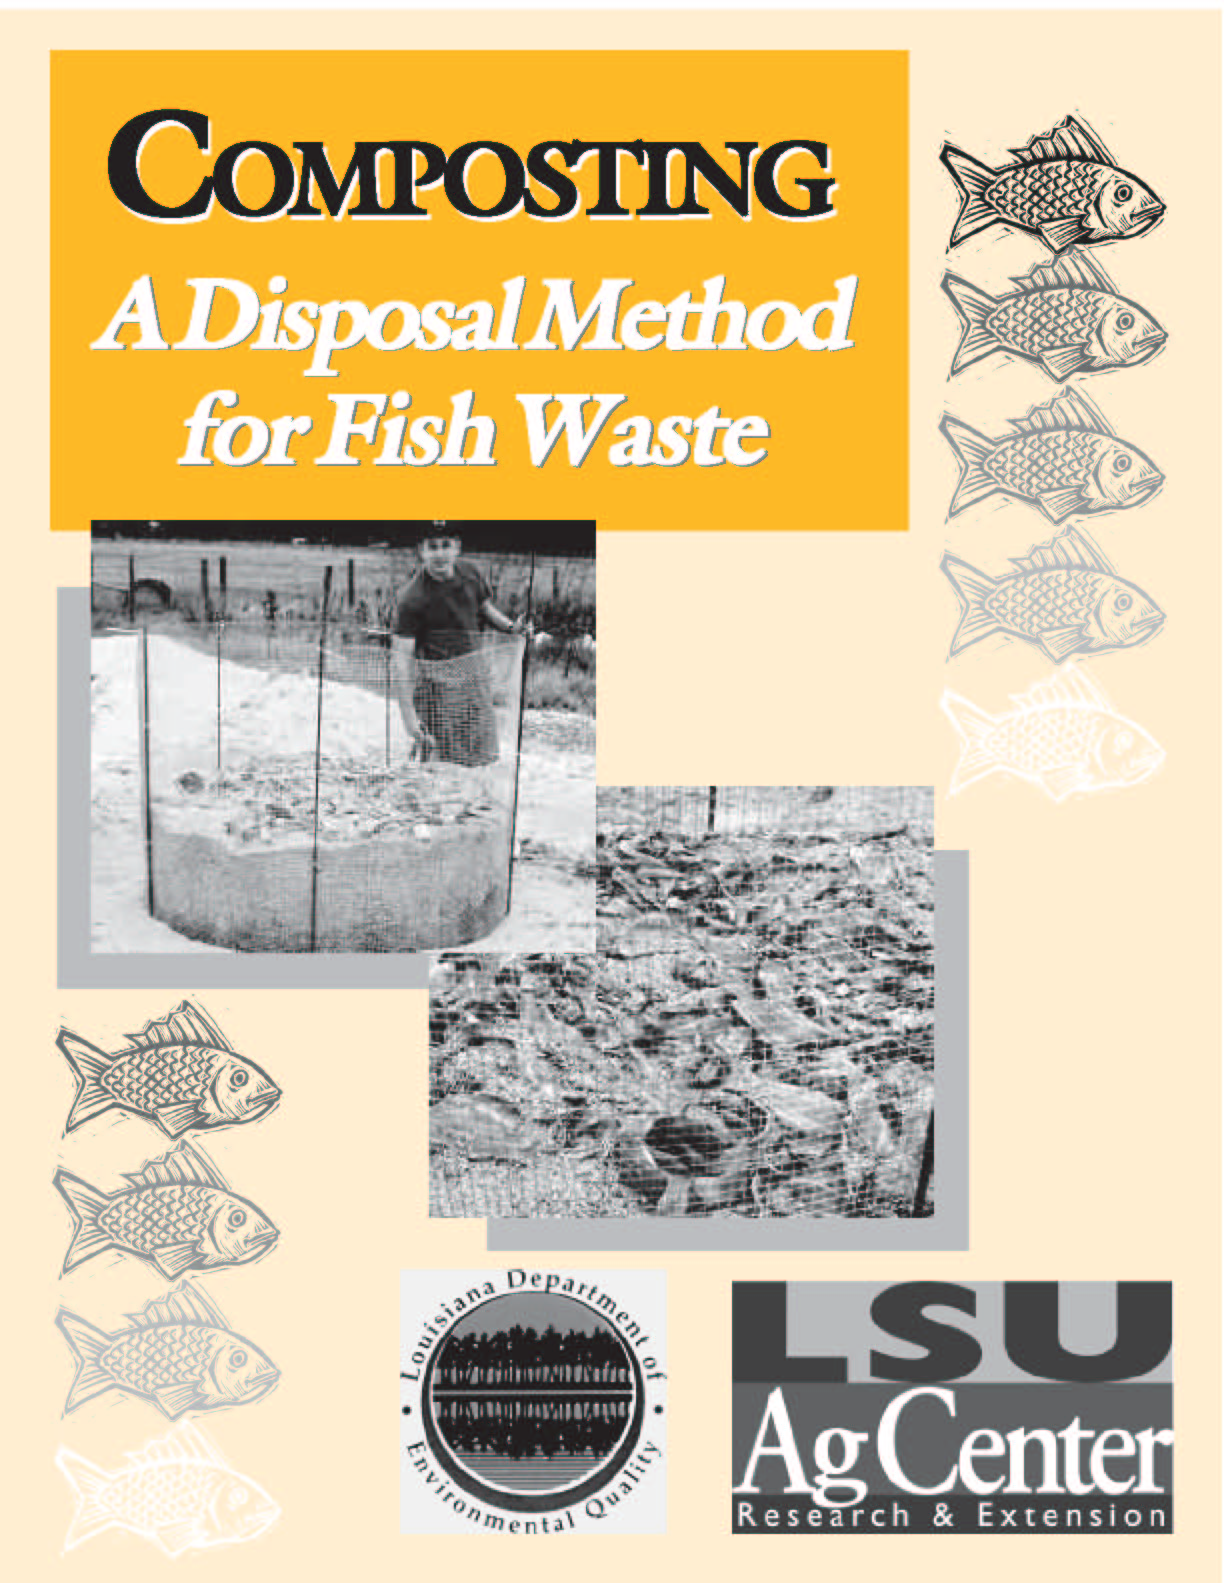 Composting: A Disposal Method for Fish Waste